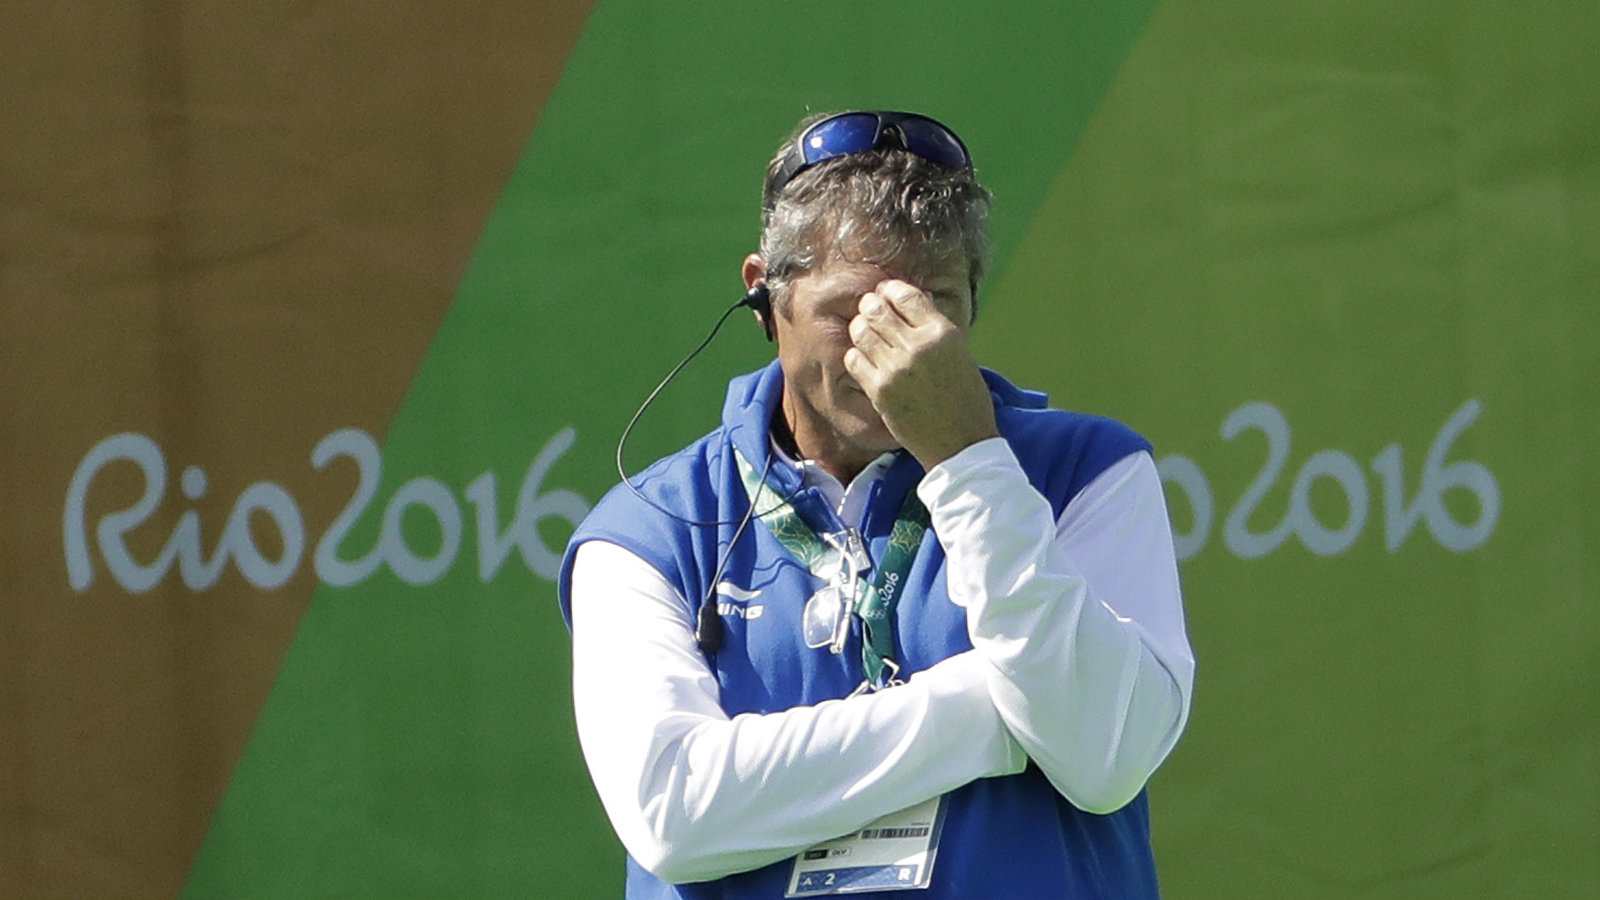 India's coach Neil Hawgood reacts after his team received the fifth goal in the first halftime during a women's field hockey match against Argentina at 2016 Summer Olympics in Rio de Janeiro, Brazil, Saturday, Aug. 13, 2016.